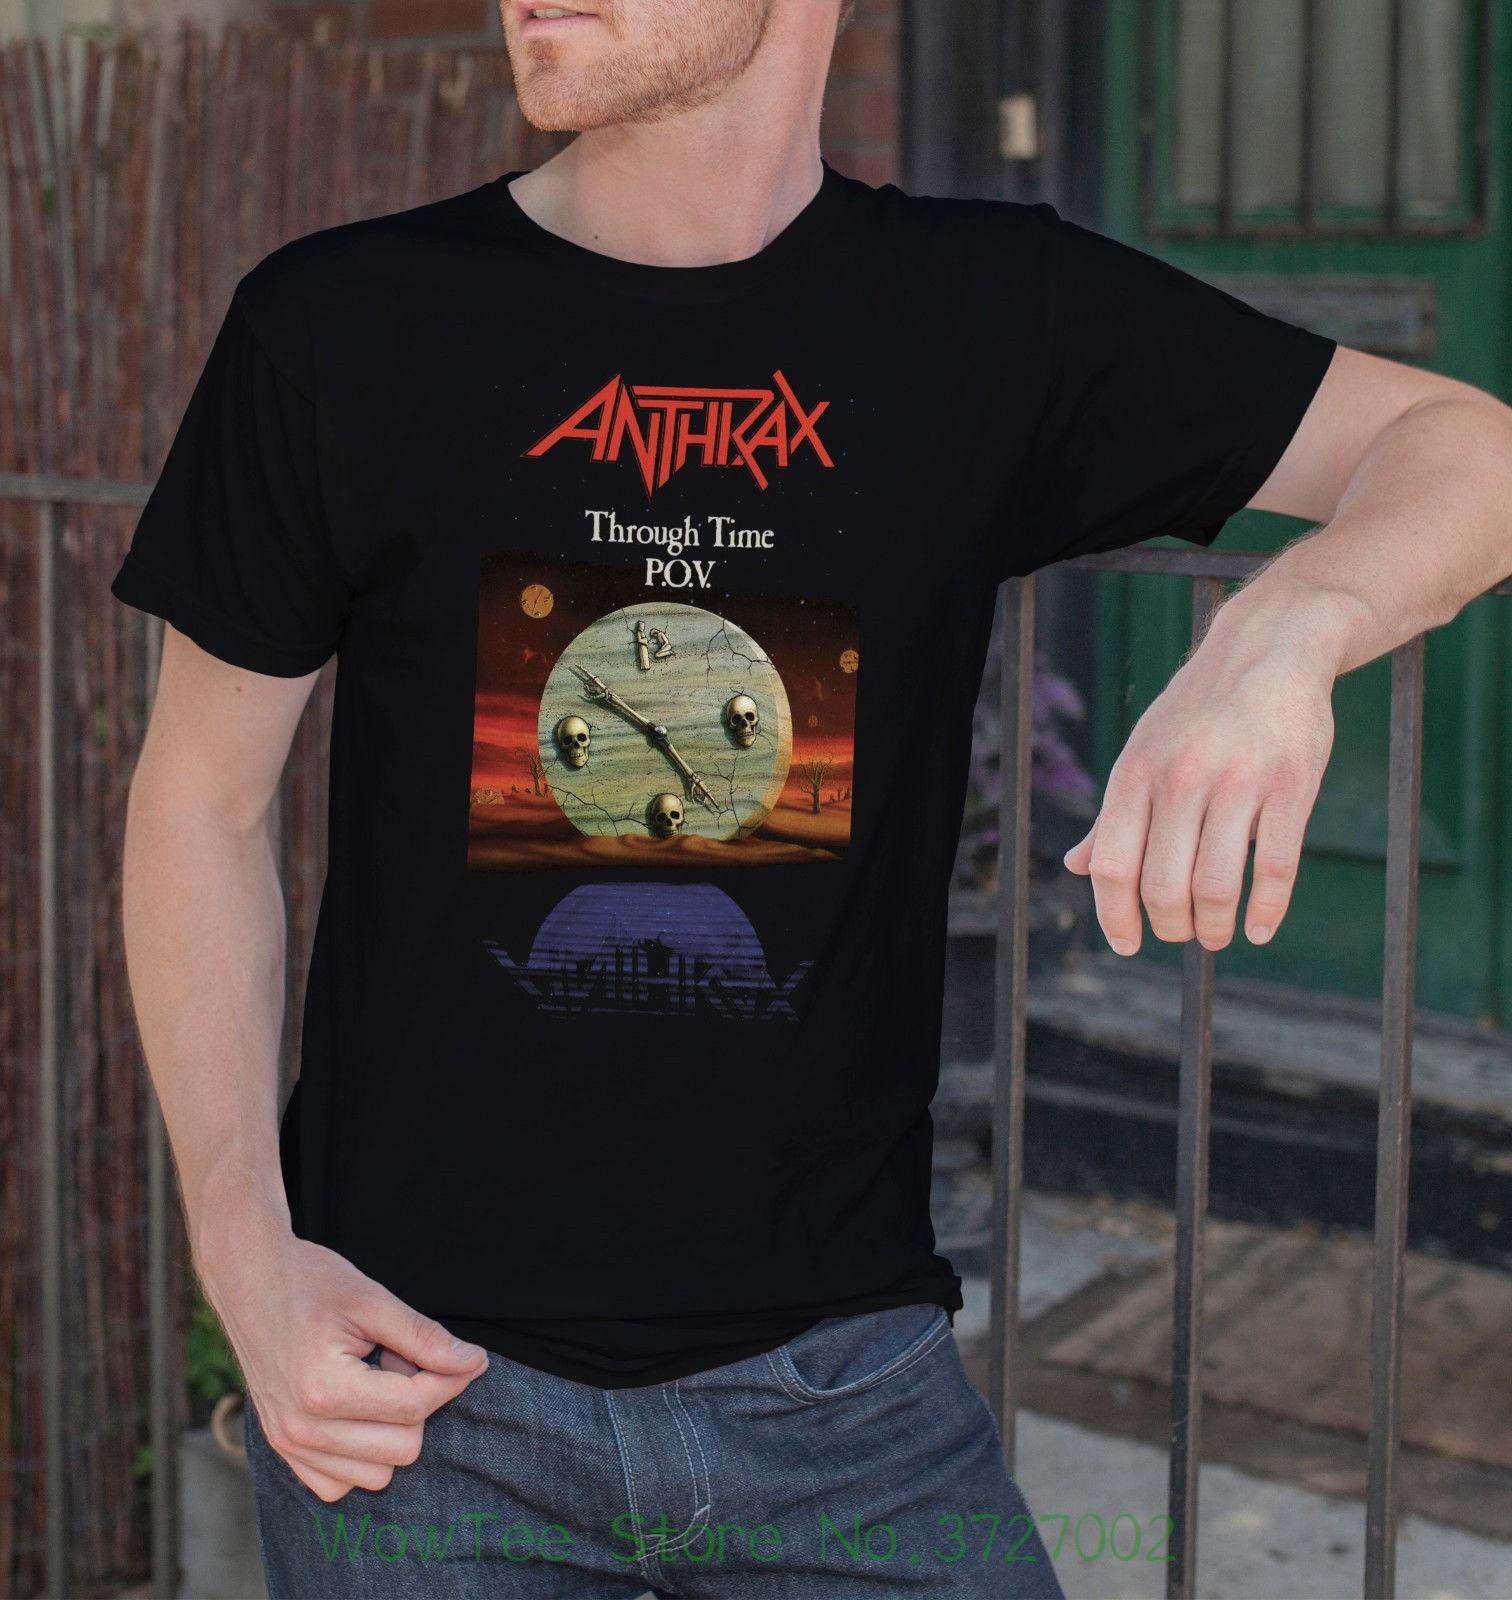 5c1e213c Anthrax Men Black T Shirt Trash Metal Tee Shirt Heavy Metal Band Tshirt S  Xxl 4 Round Neck Men Top Tee Funny Tee Shirt Buy T Shirt Designs From  Wowteestore, ...